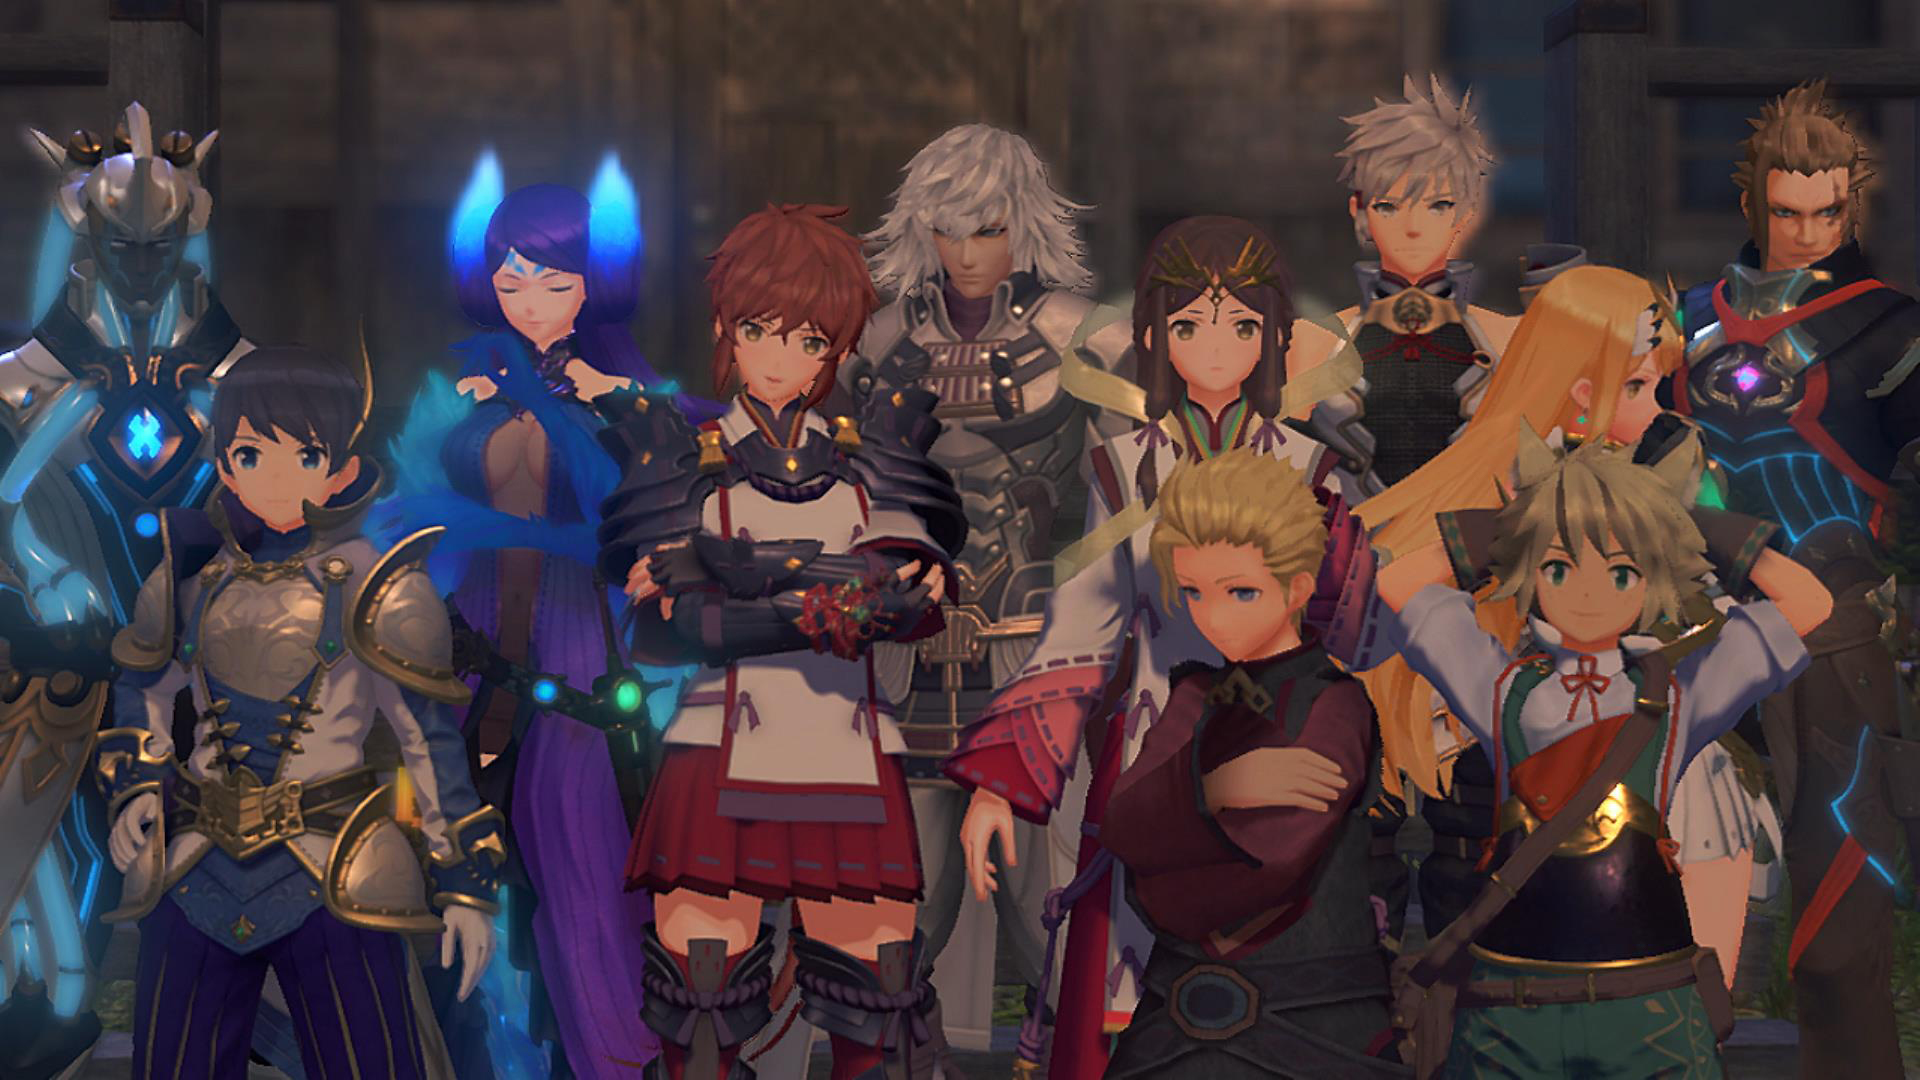 DLC code missing in local copies of Xenoblade Chronicles 2: Torna